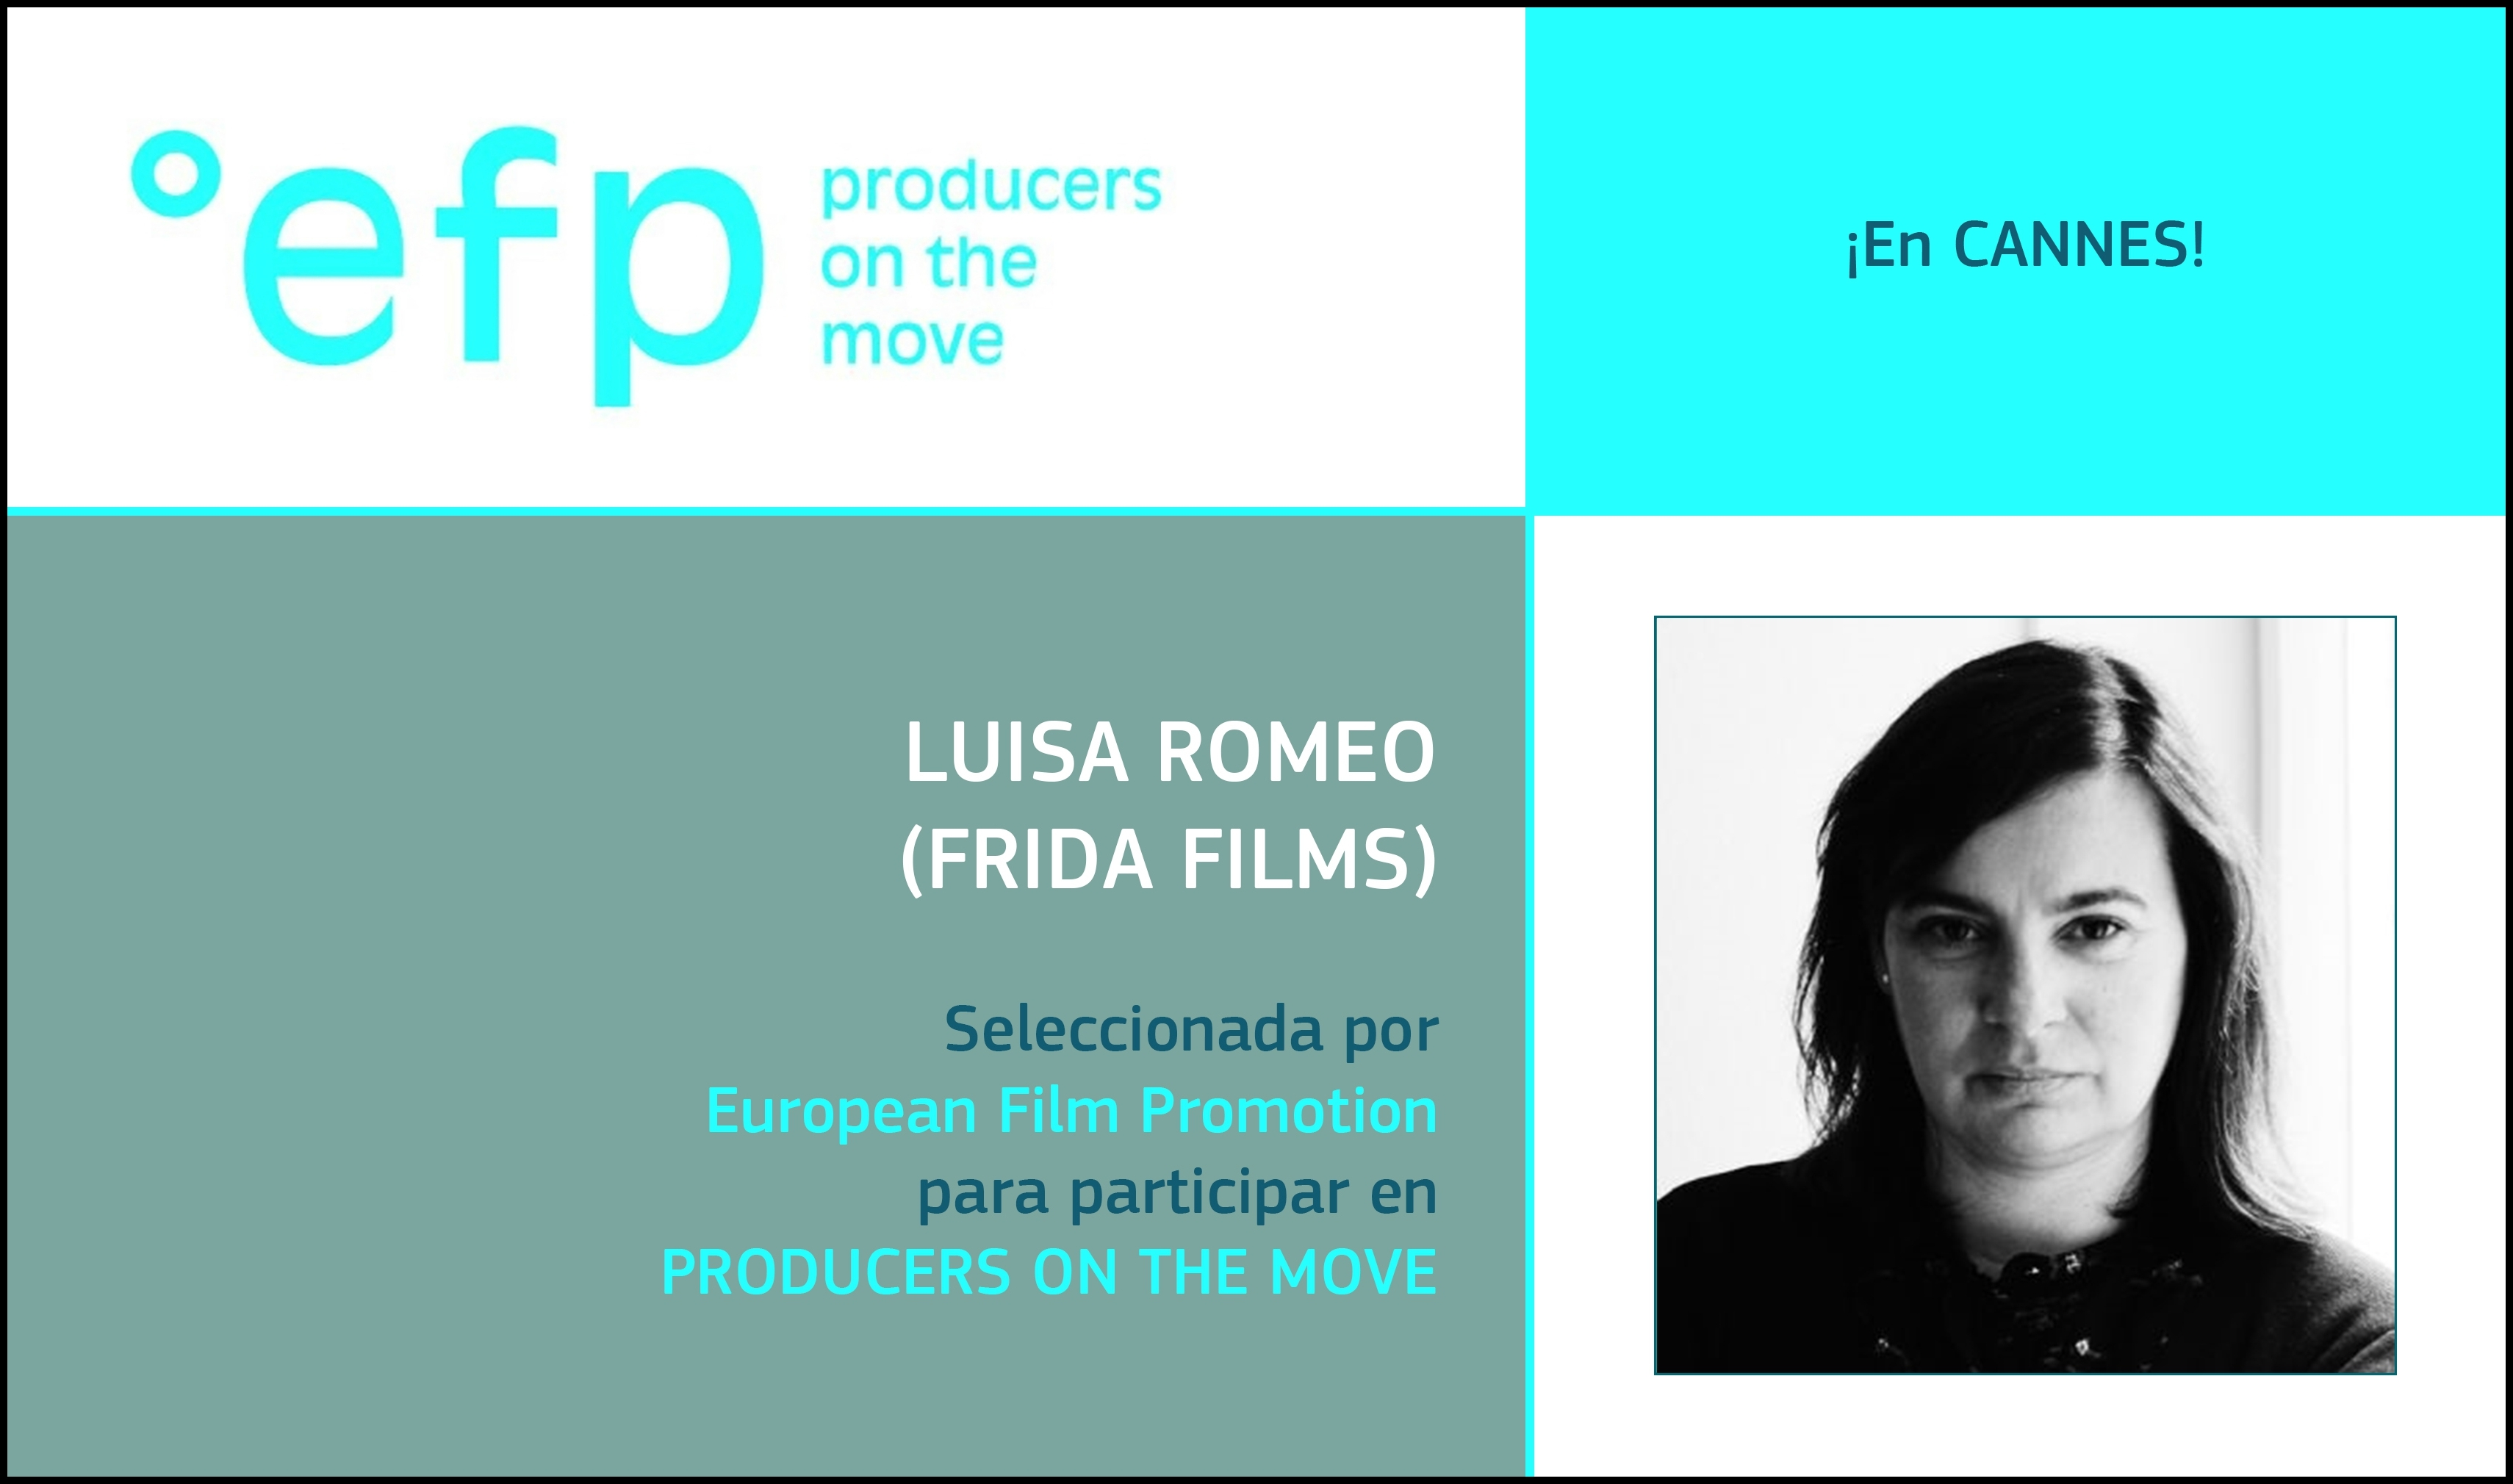 PRODUCERS ON THE MOVE: Luisa Romeo (Frida Films) ha sido seleccionada